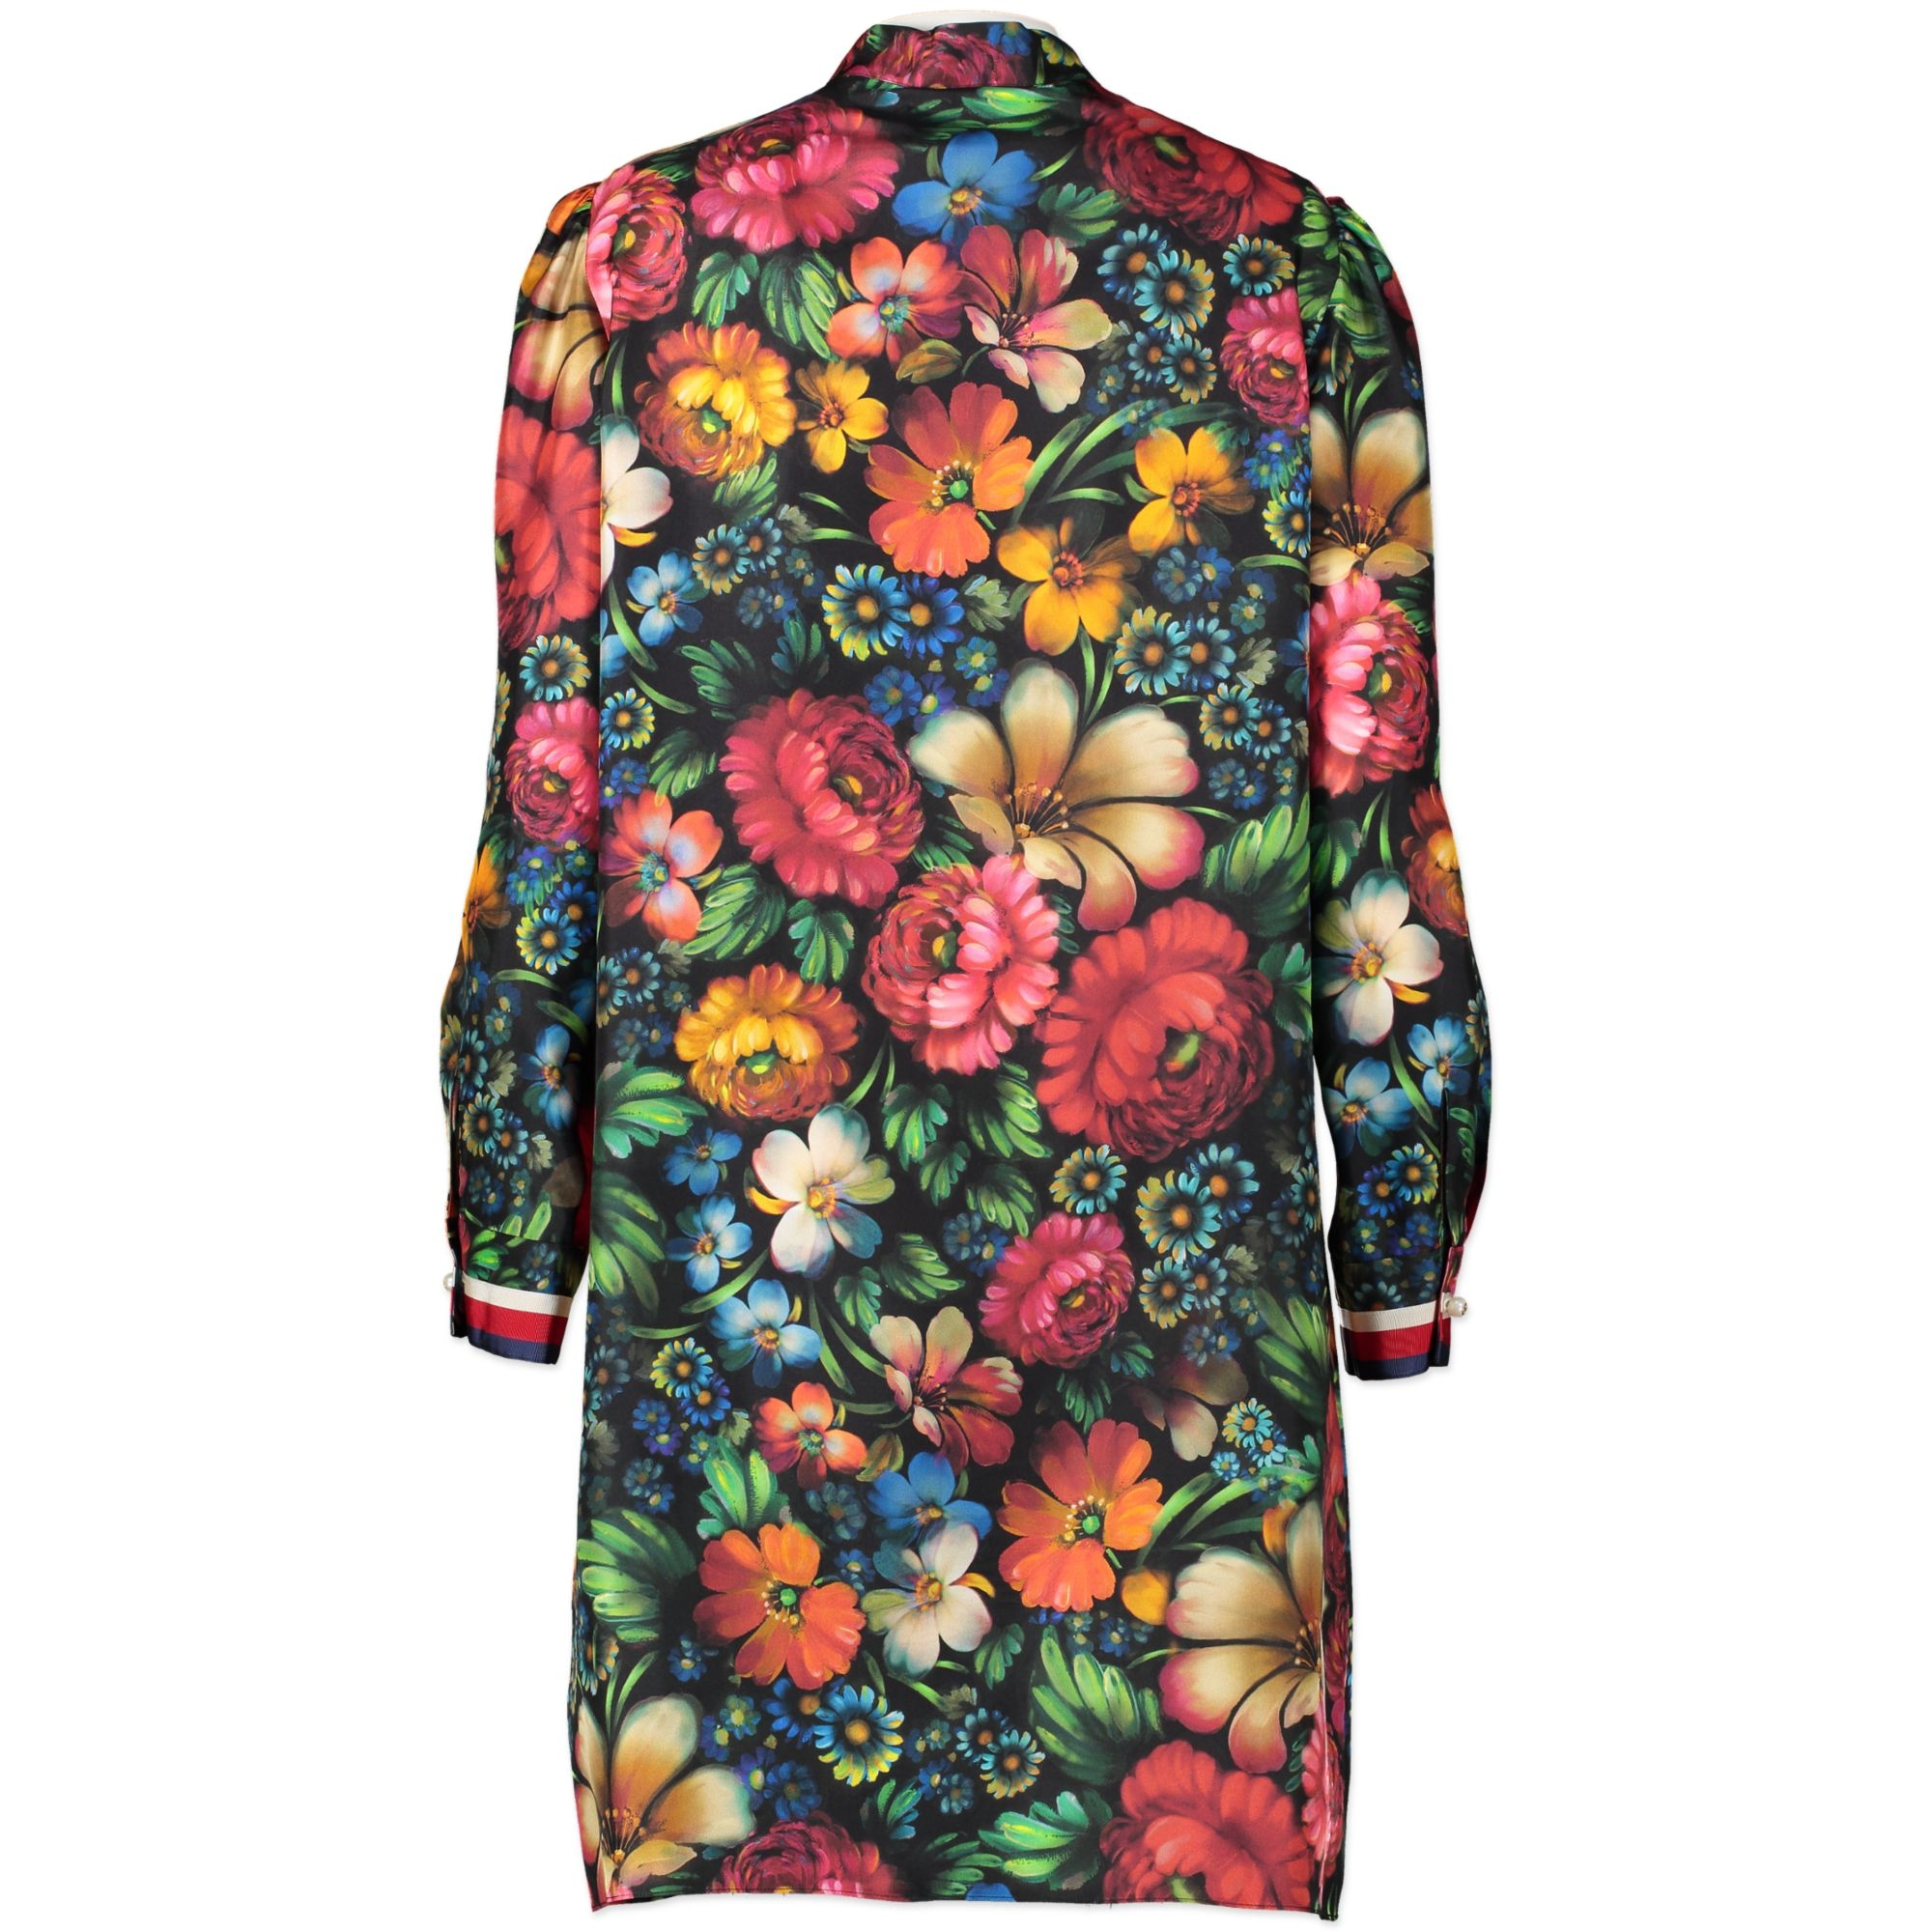 Gucci Floral Silk Shirt Dress - size IT40 pour le meilleur prix chez Labellov à Anvers